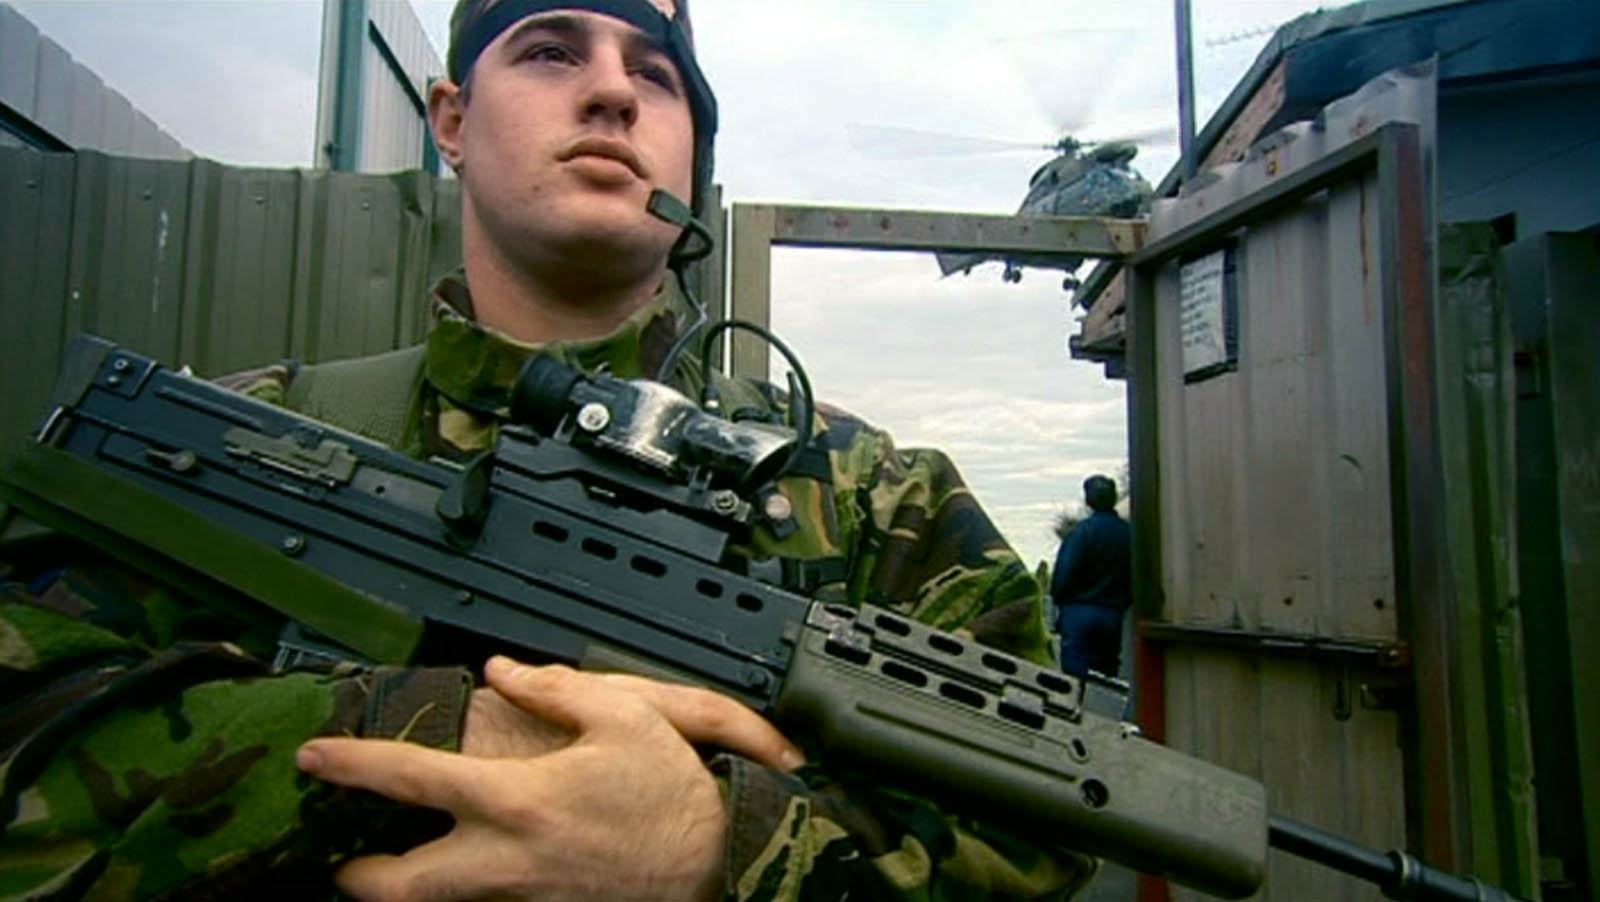 Video production for BBC Worldwide of Magnum photographer Donovan Wylie - soldier in front of British army helicopter filmed by a director at Bout Yeh video production Belfast, Northern Ireland